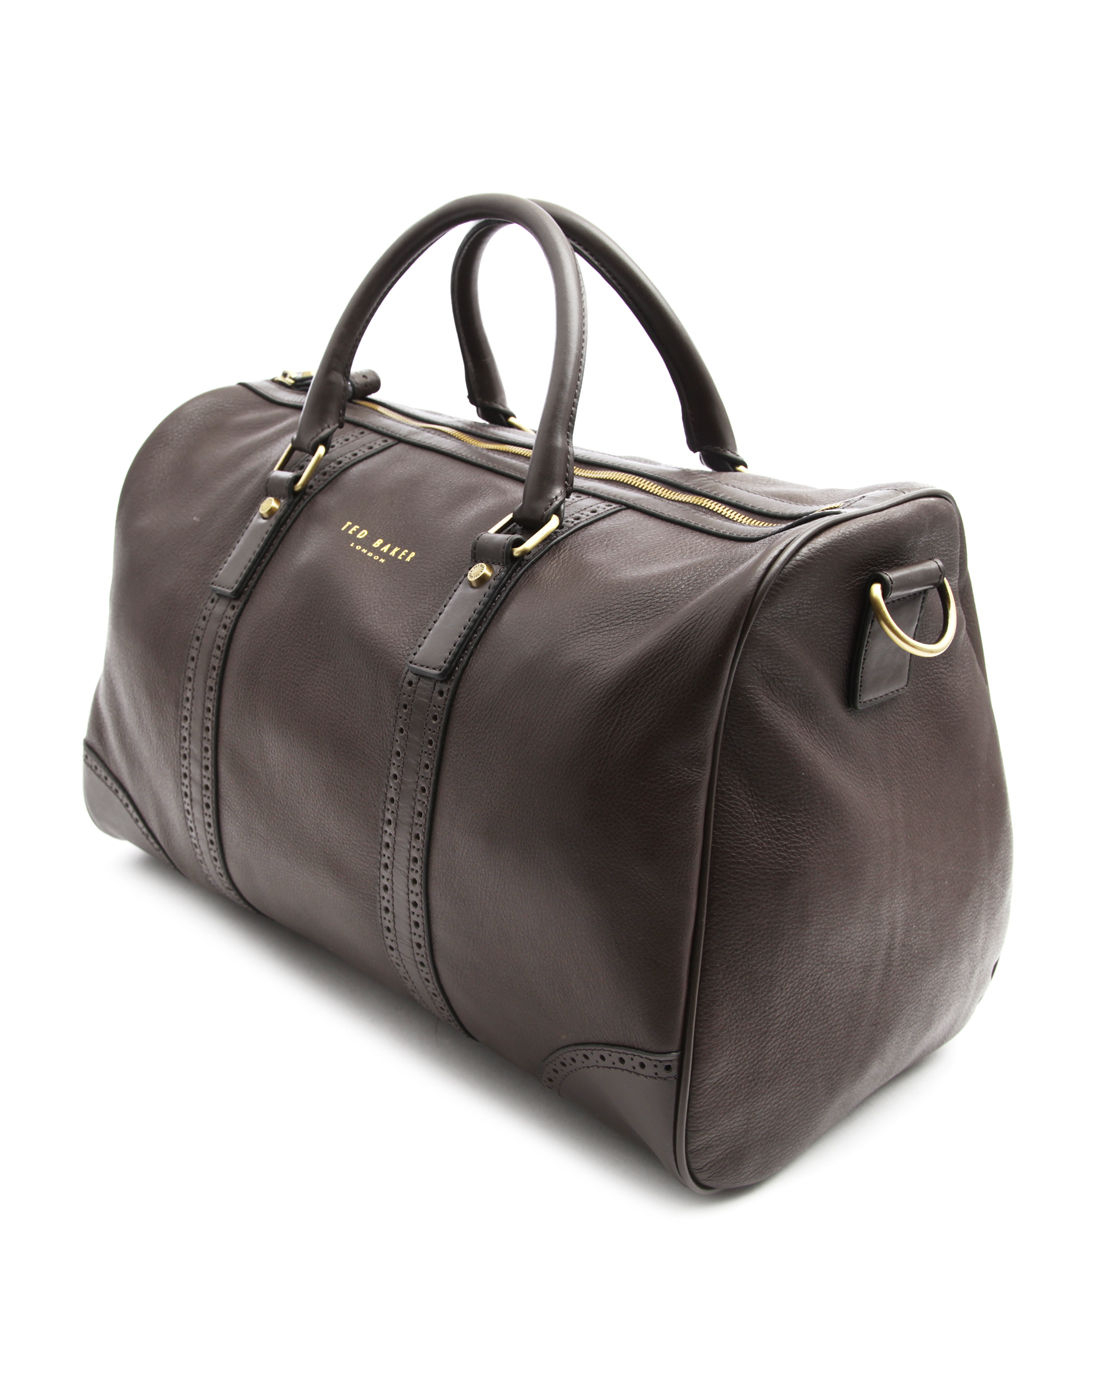 leather weekend bags for men - photo #12